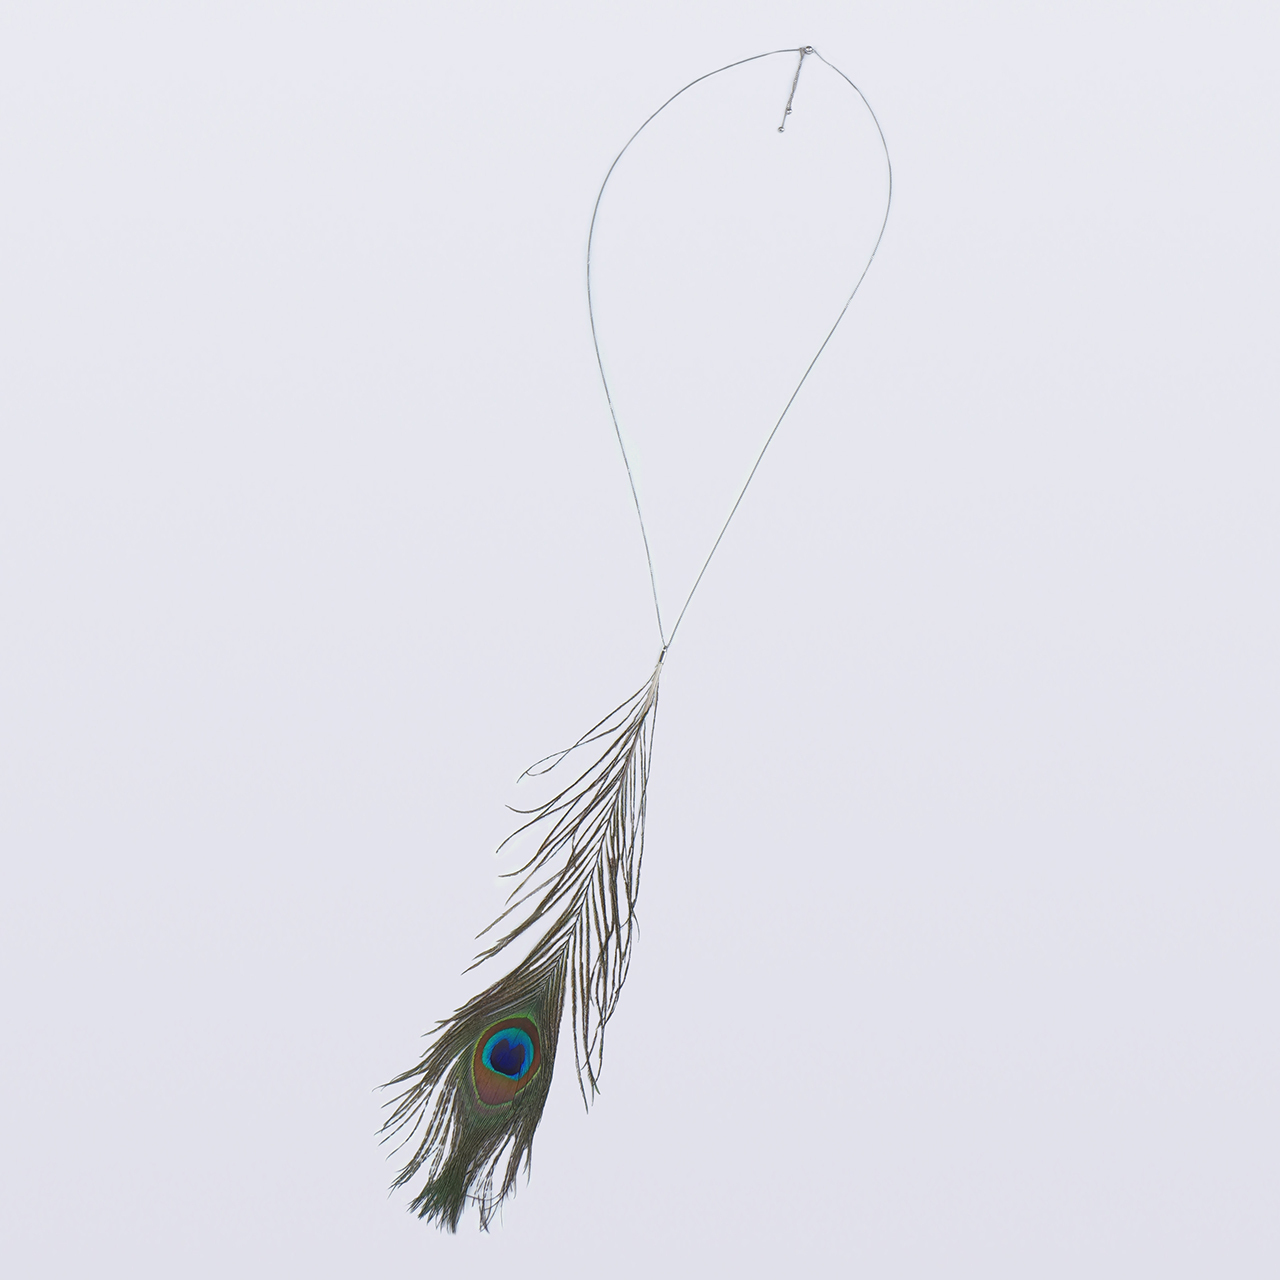 HATRA  Feather Chain  ハトラ フェザーチェーン